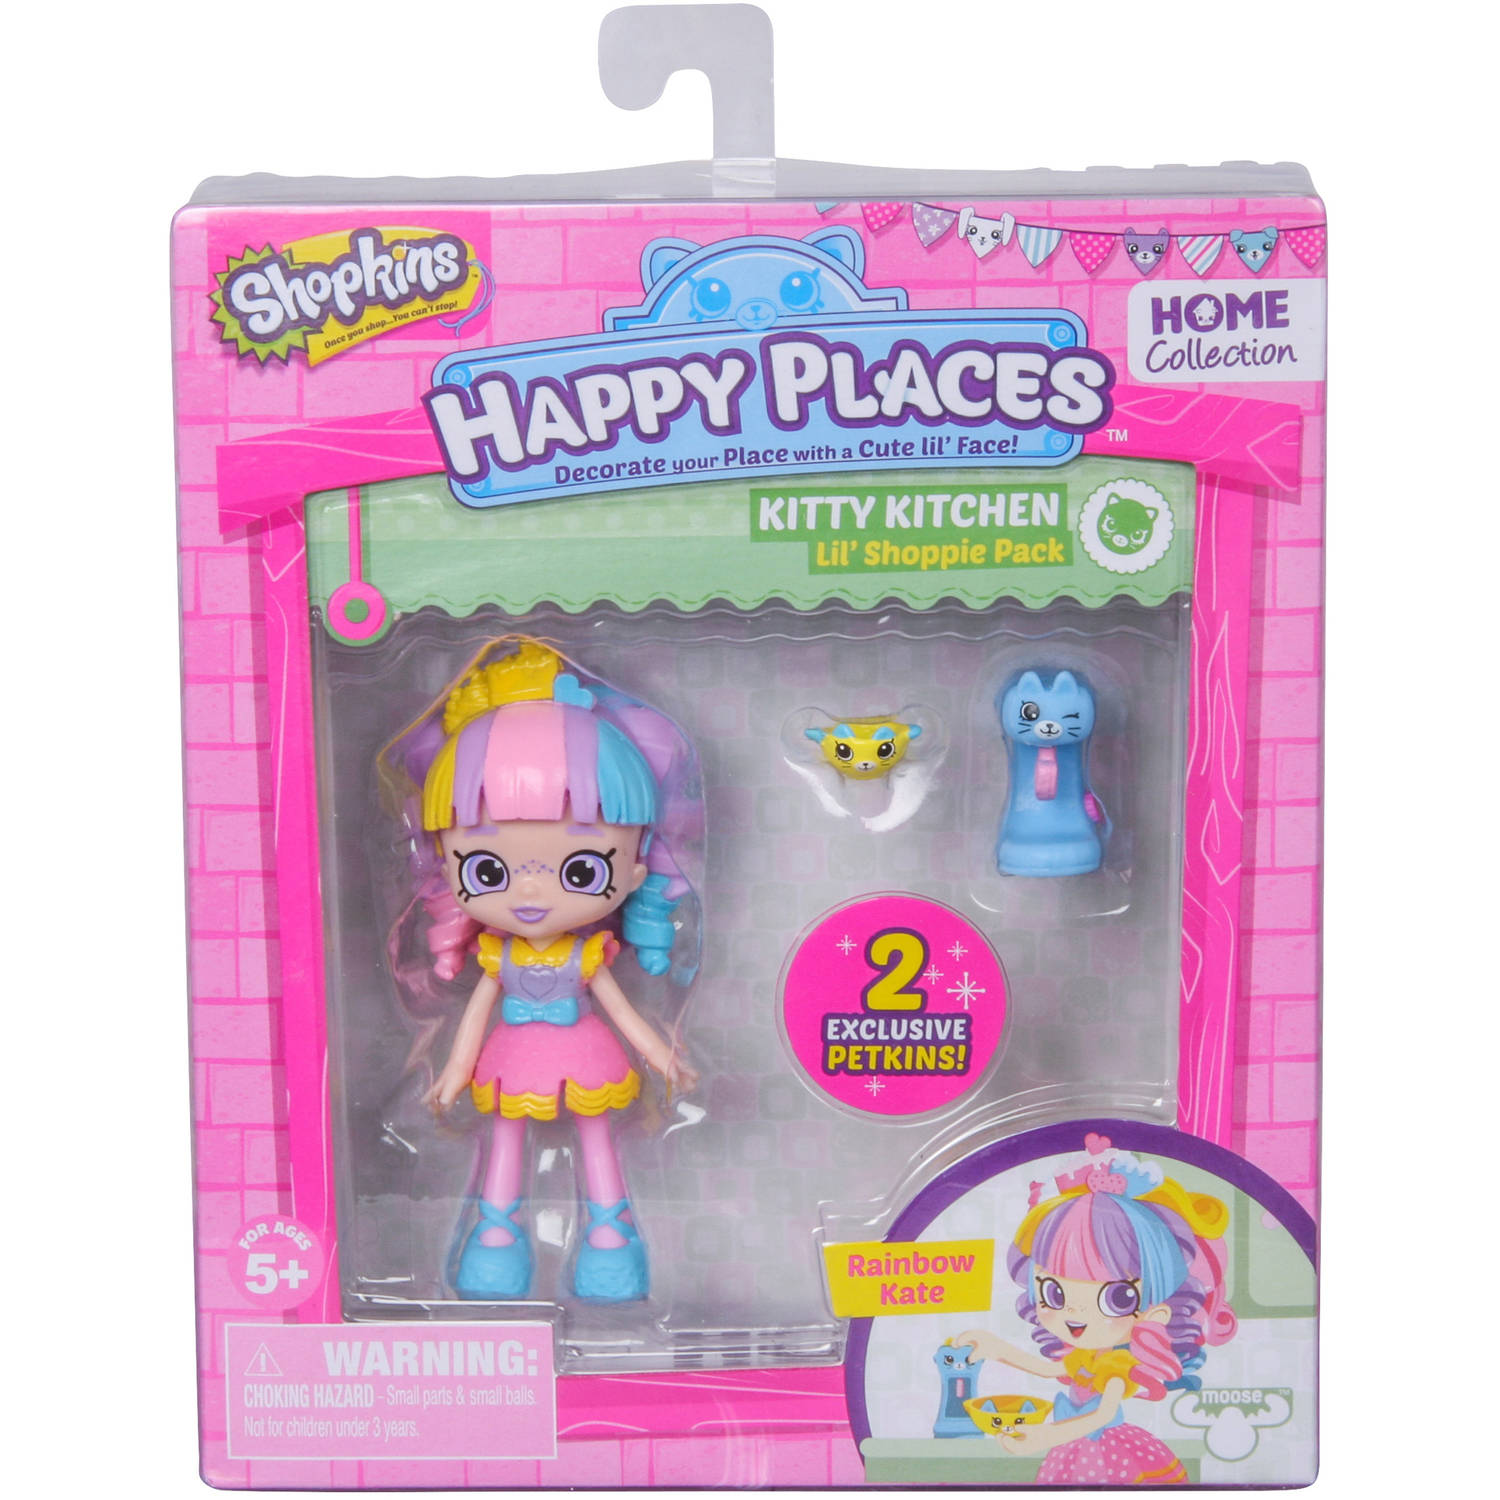 Shopkins Happy Places Doll Single Pack, Rainbow Kate